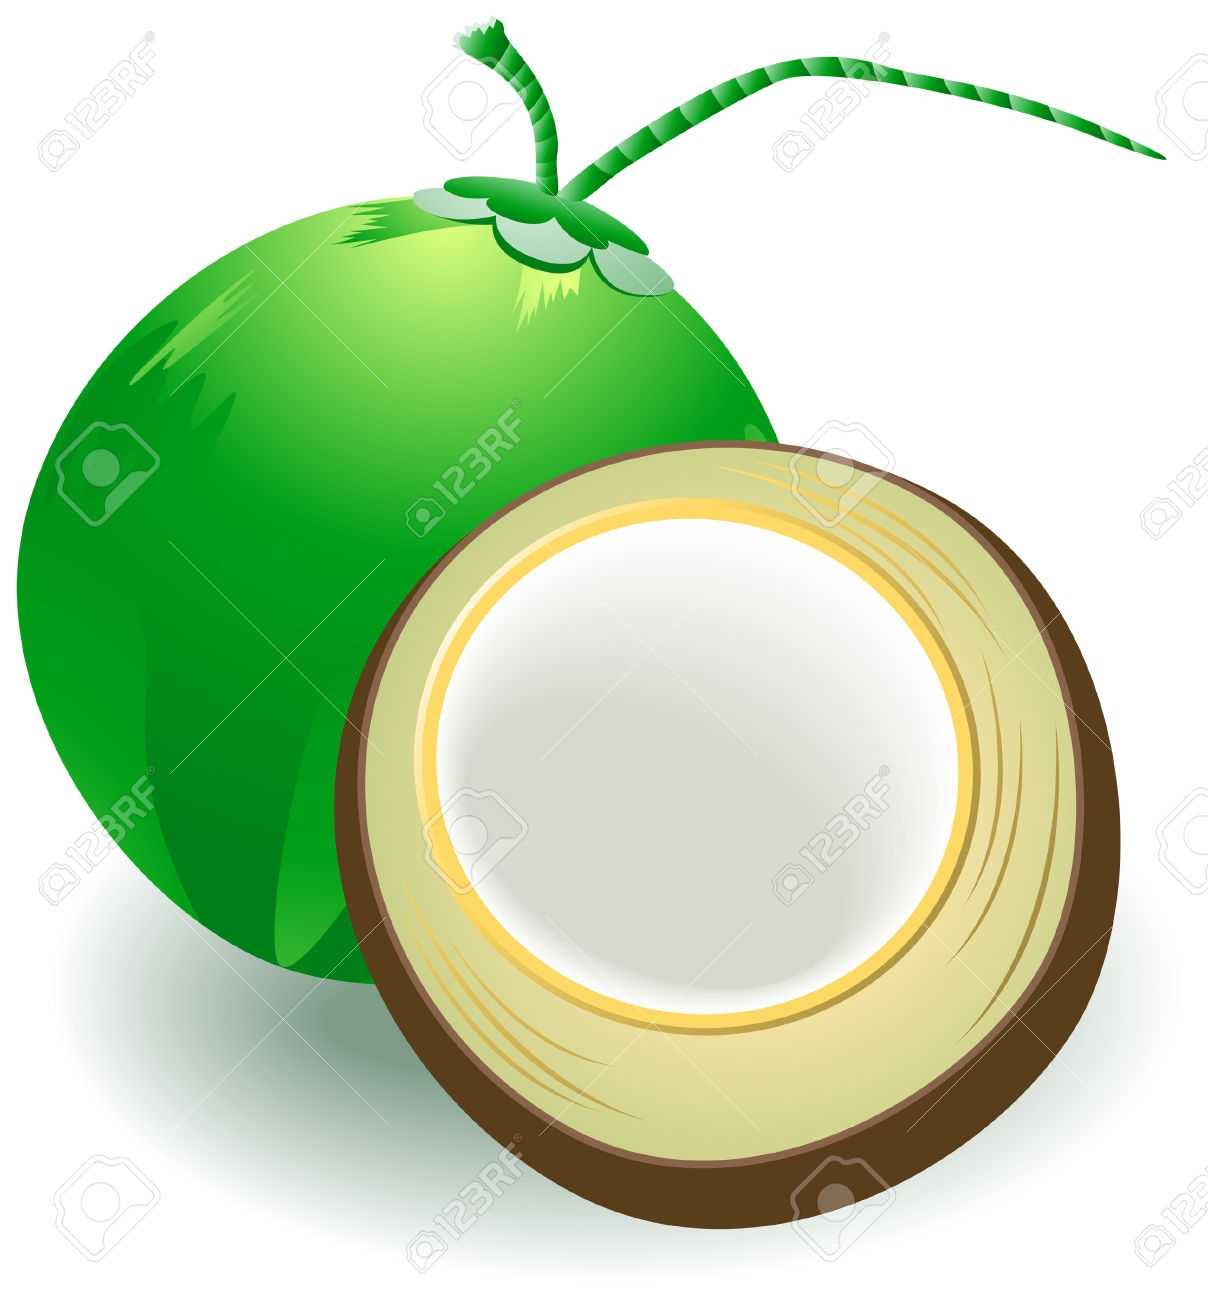 New design digital collection. Coconut clipart